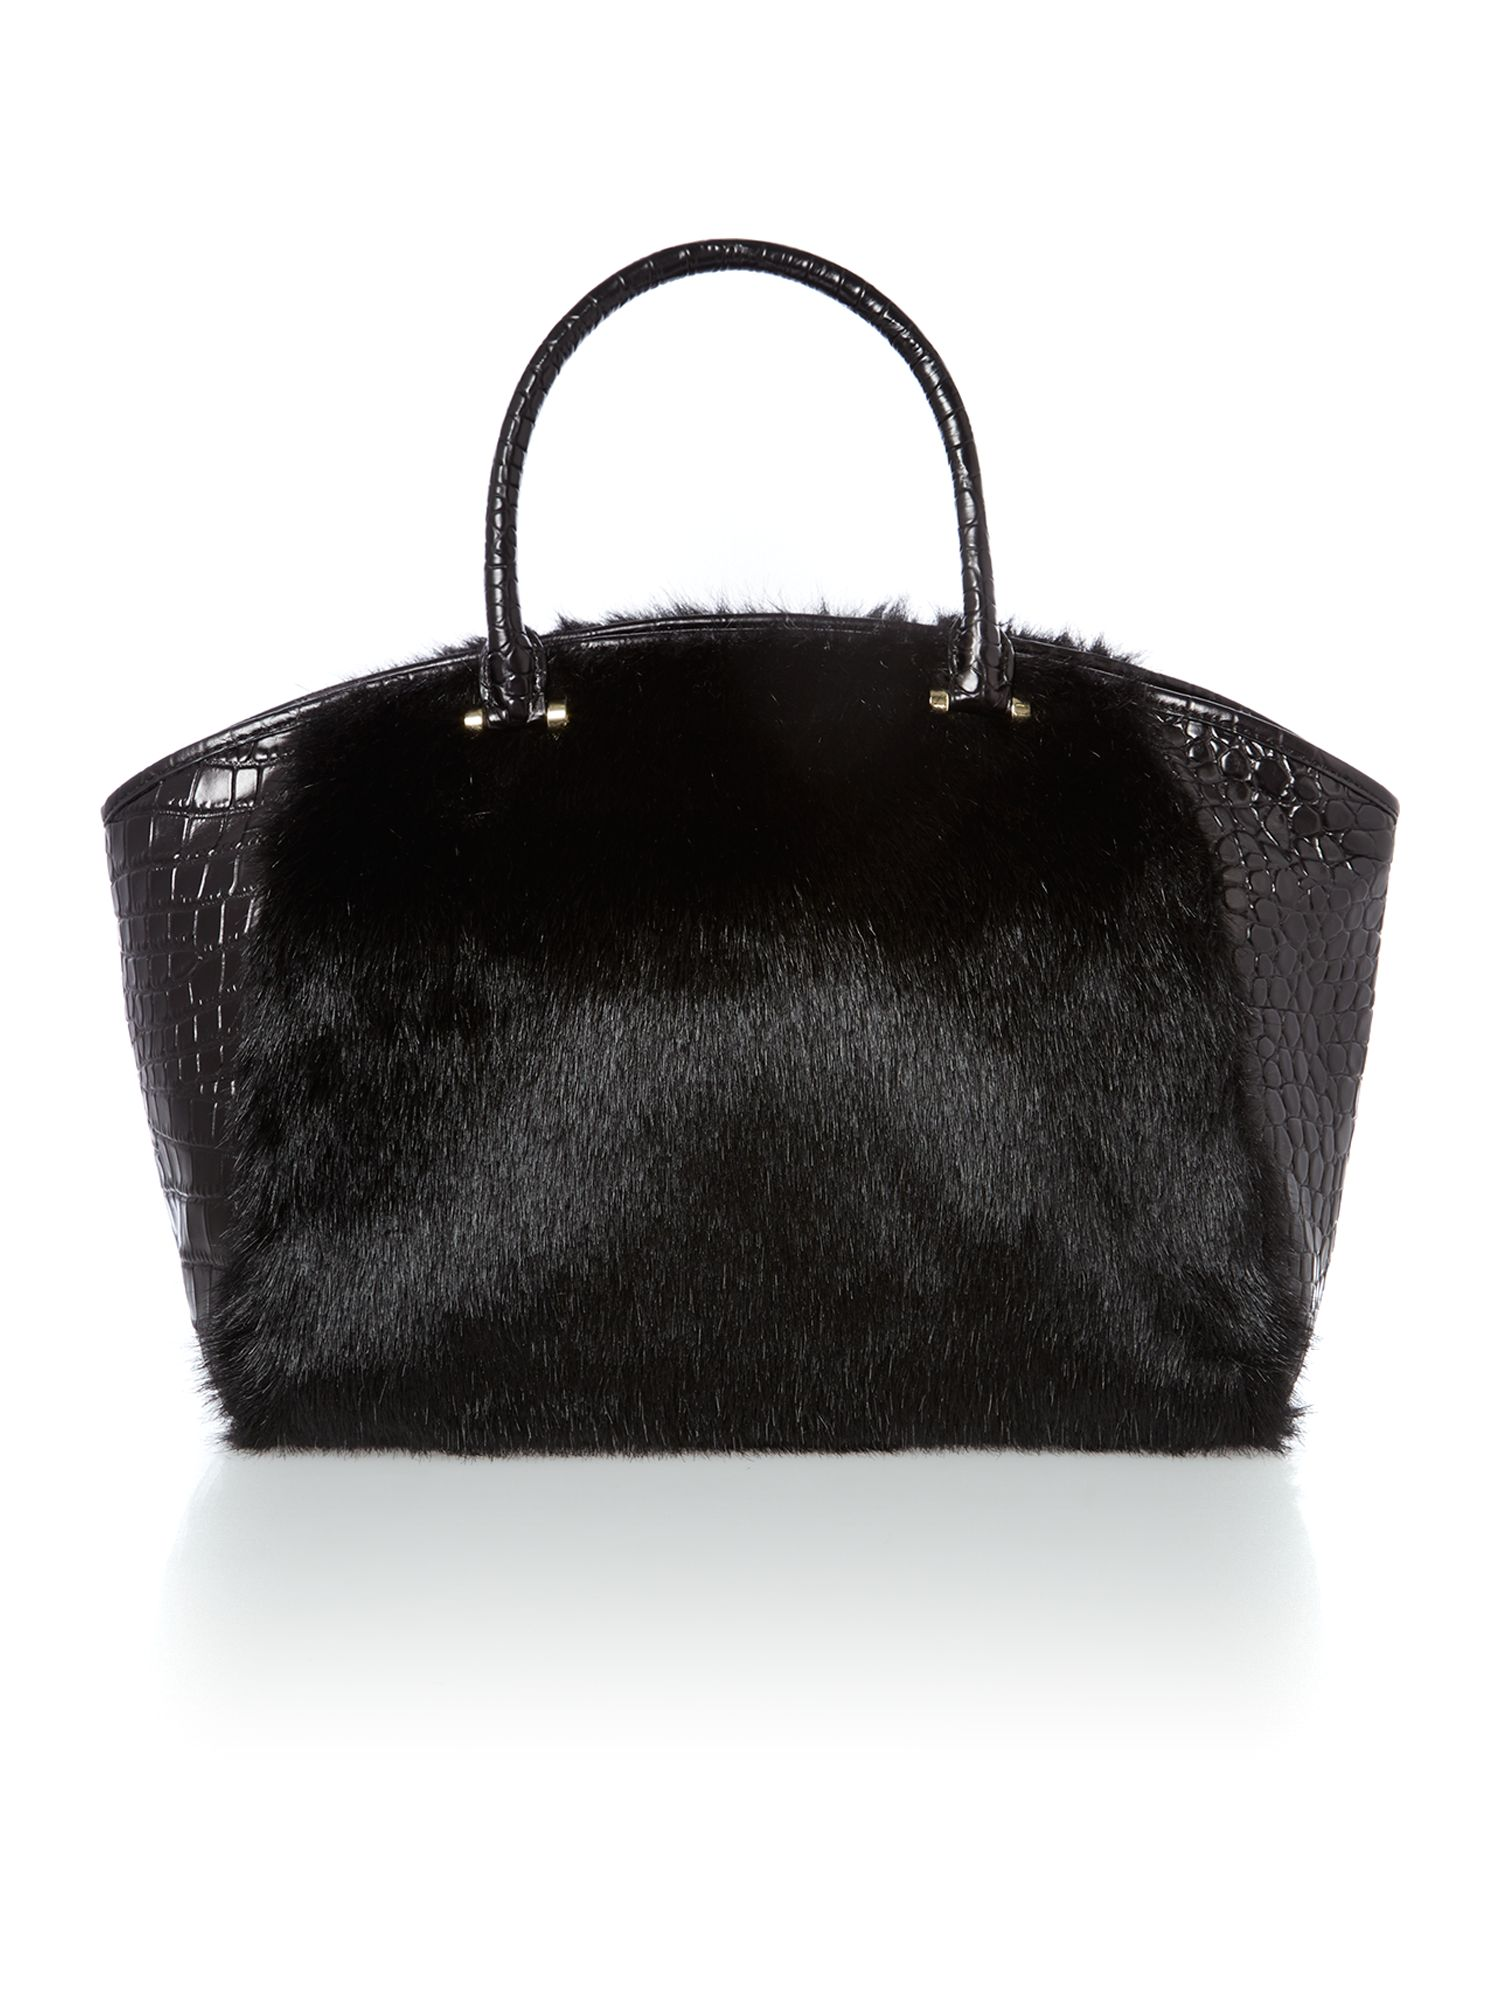 Gramercy black satchel with faux fur detail